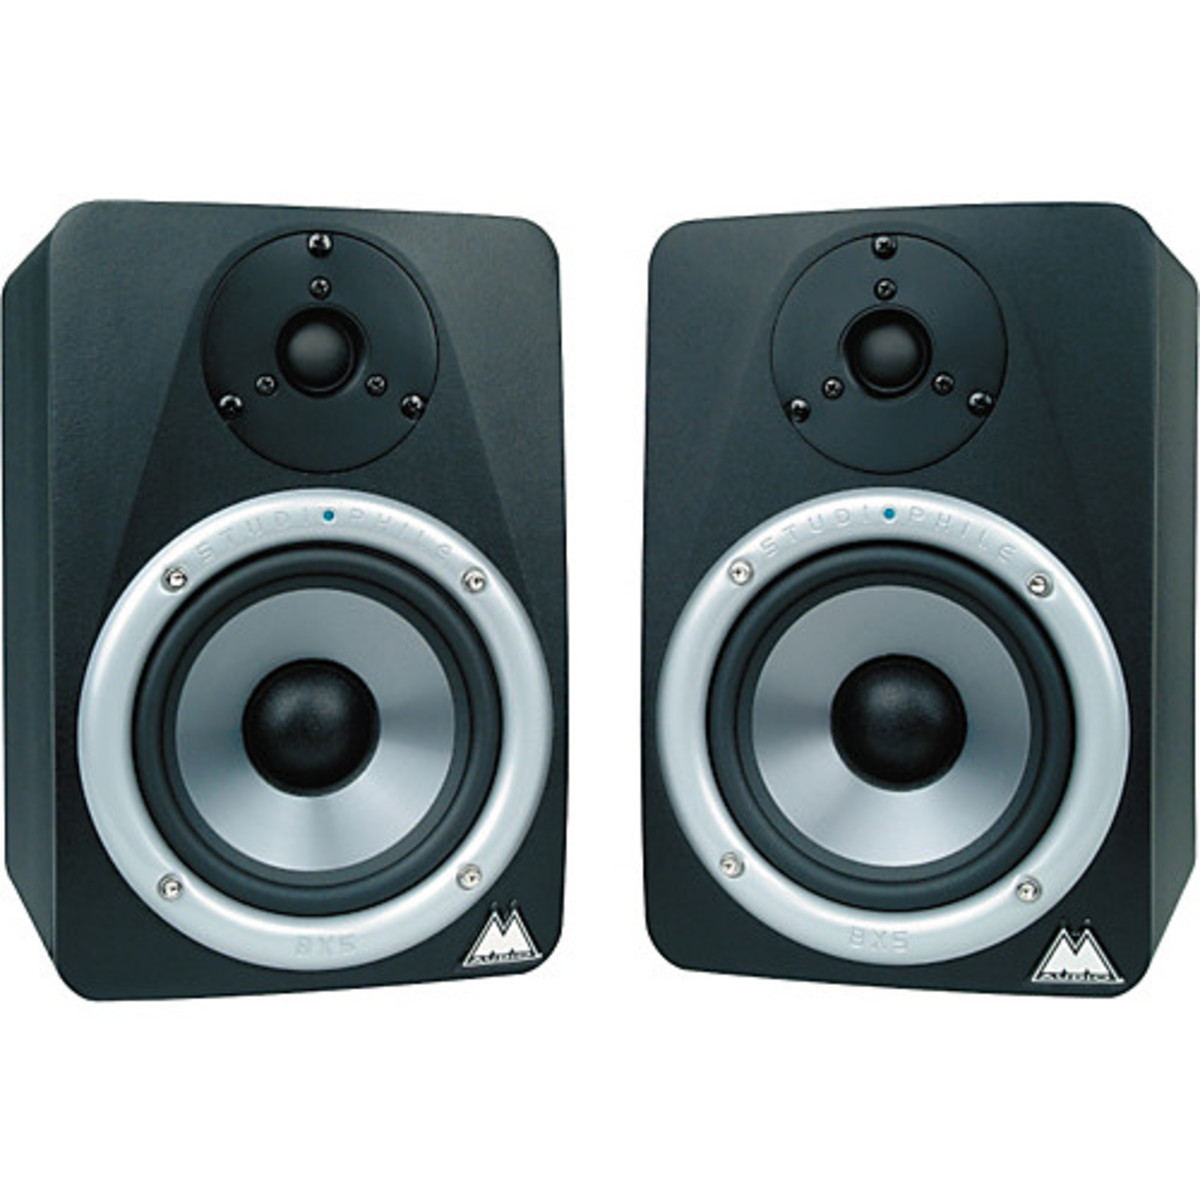 M-Audio Studiophile BX5 Speakers